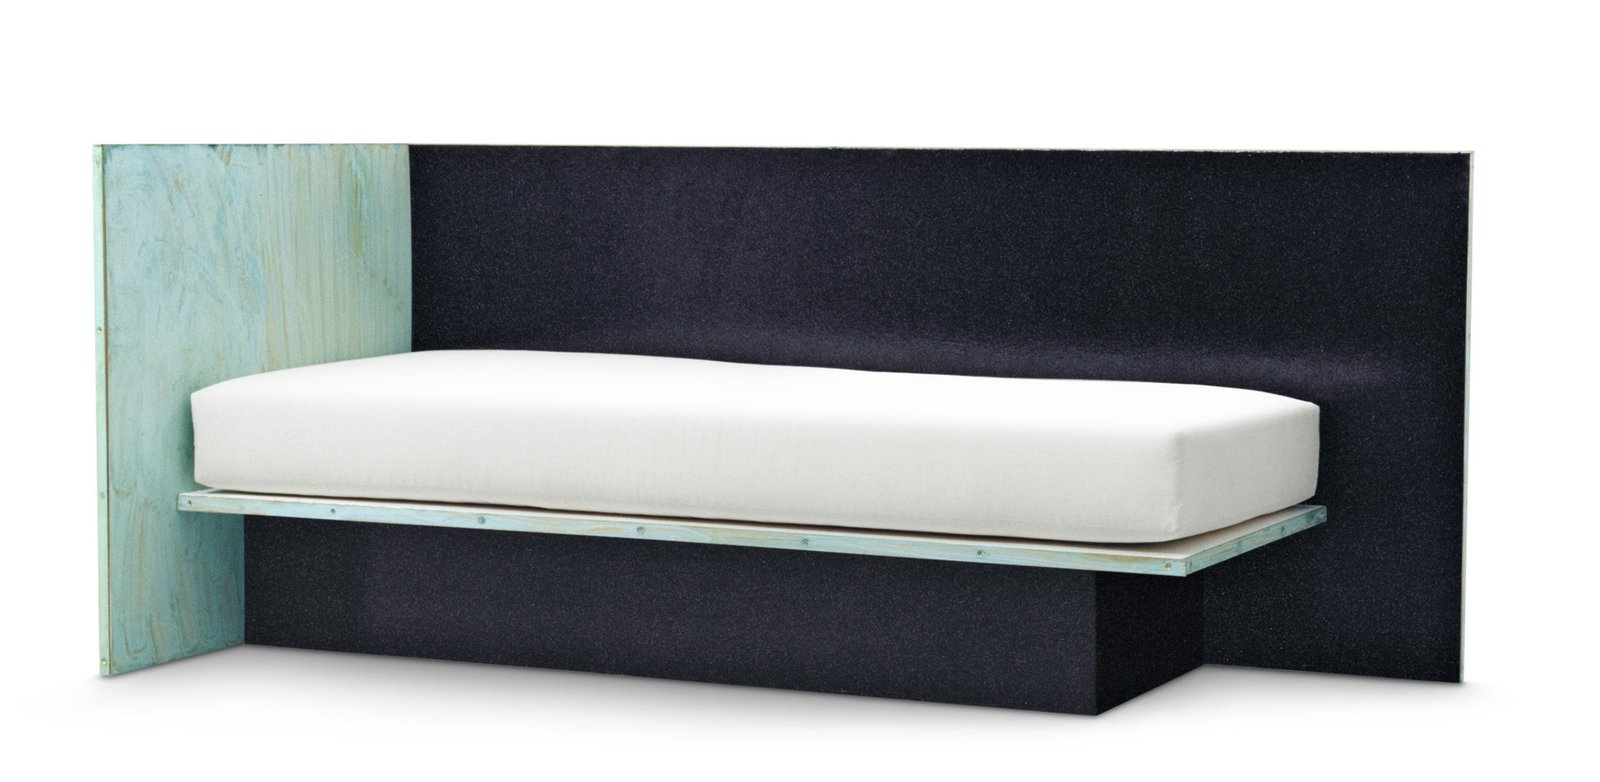 A Brass and Lacquered Wood Daybed by Green River Project.